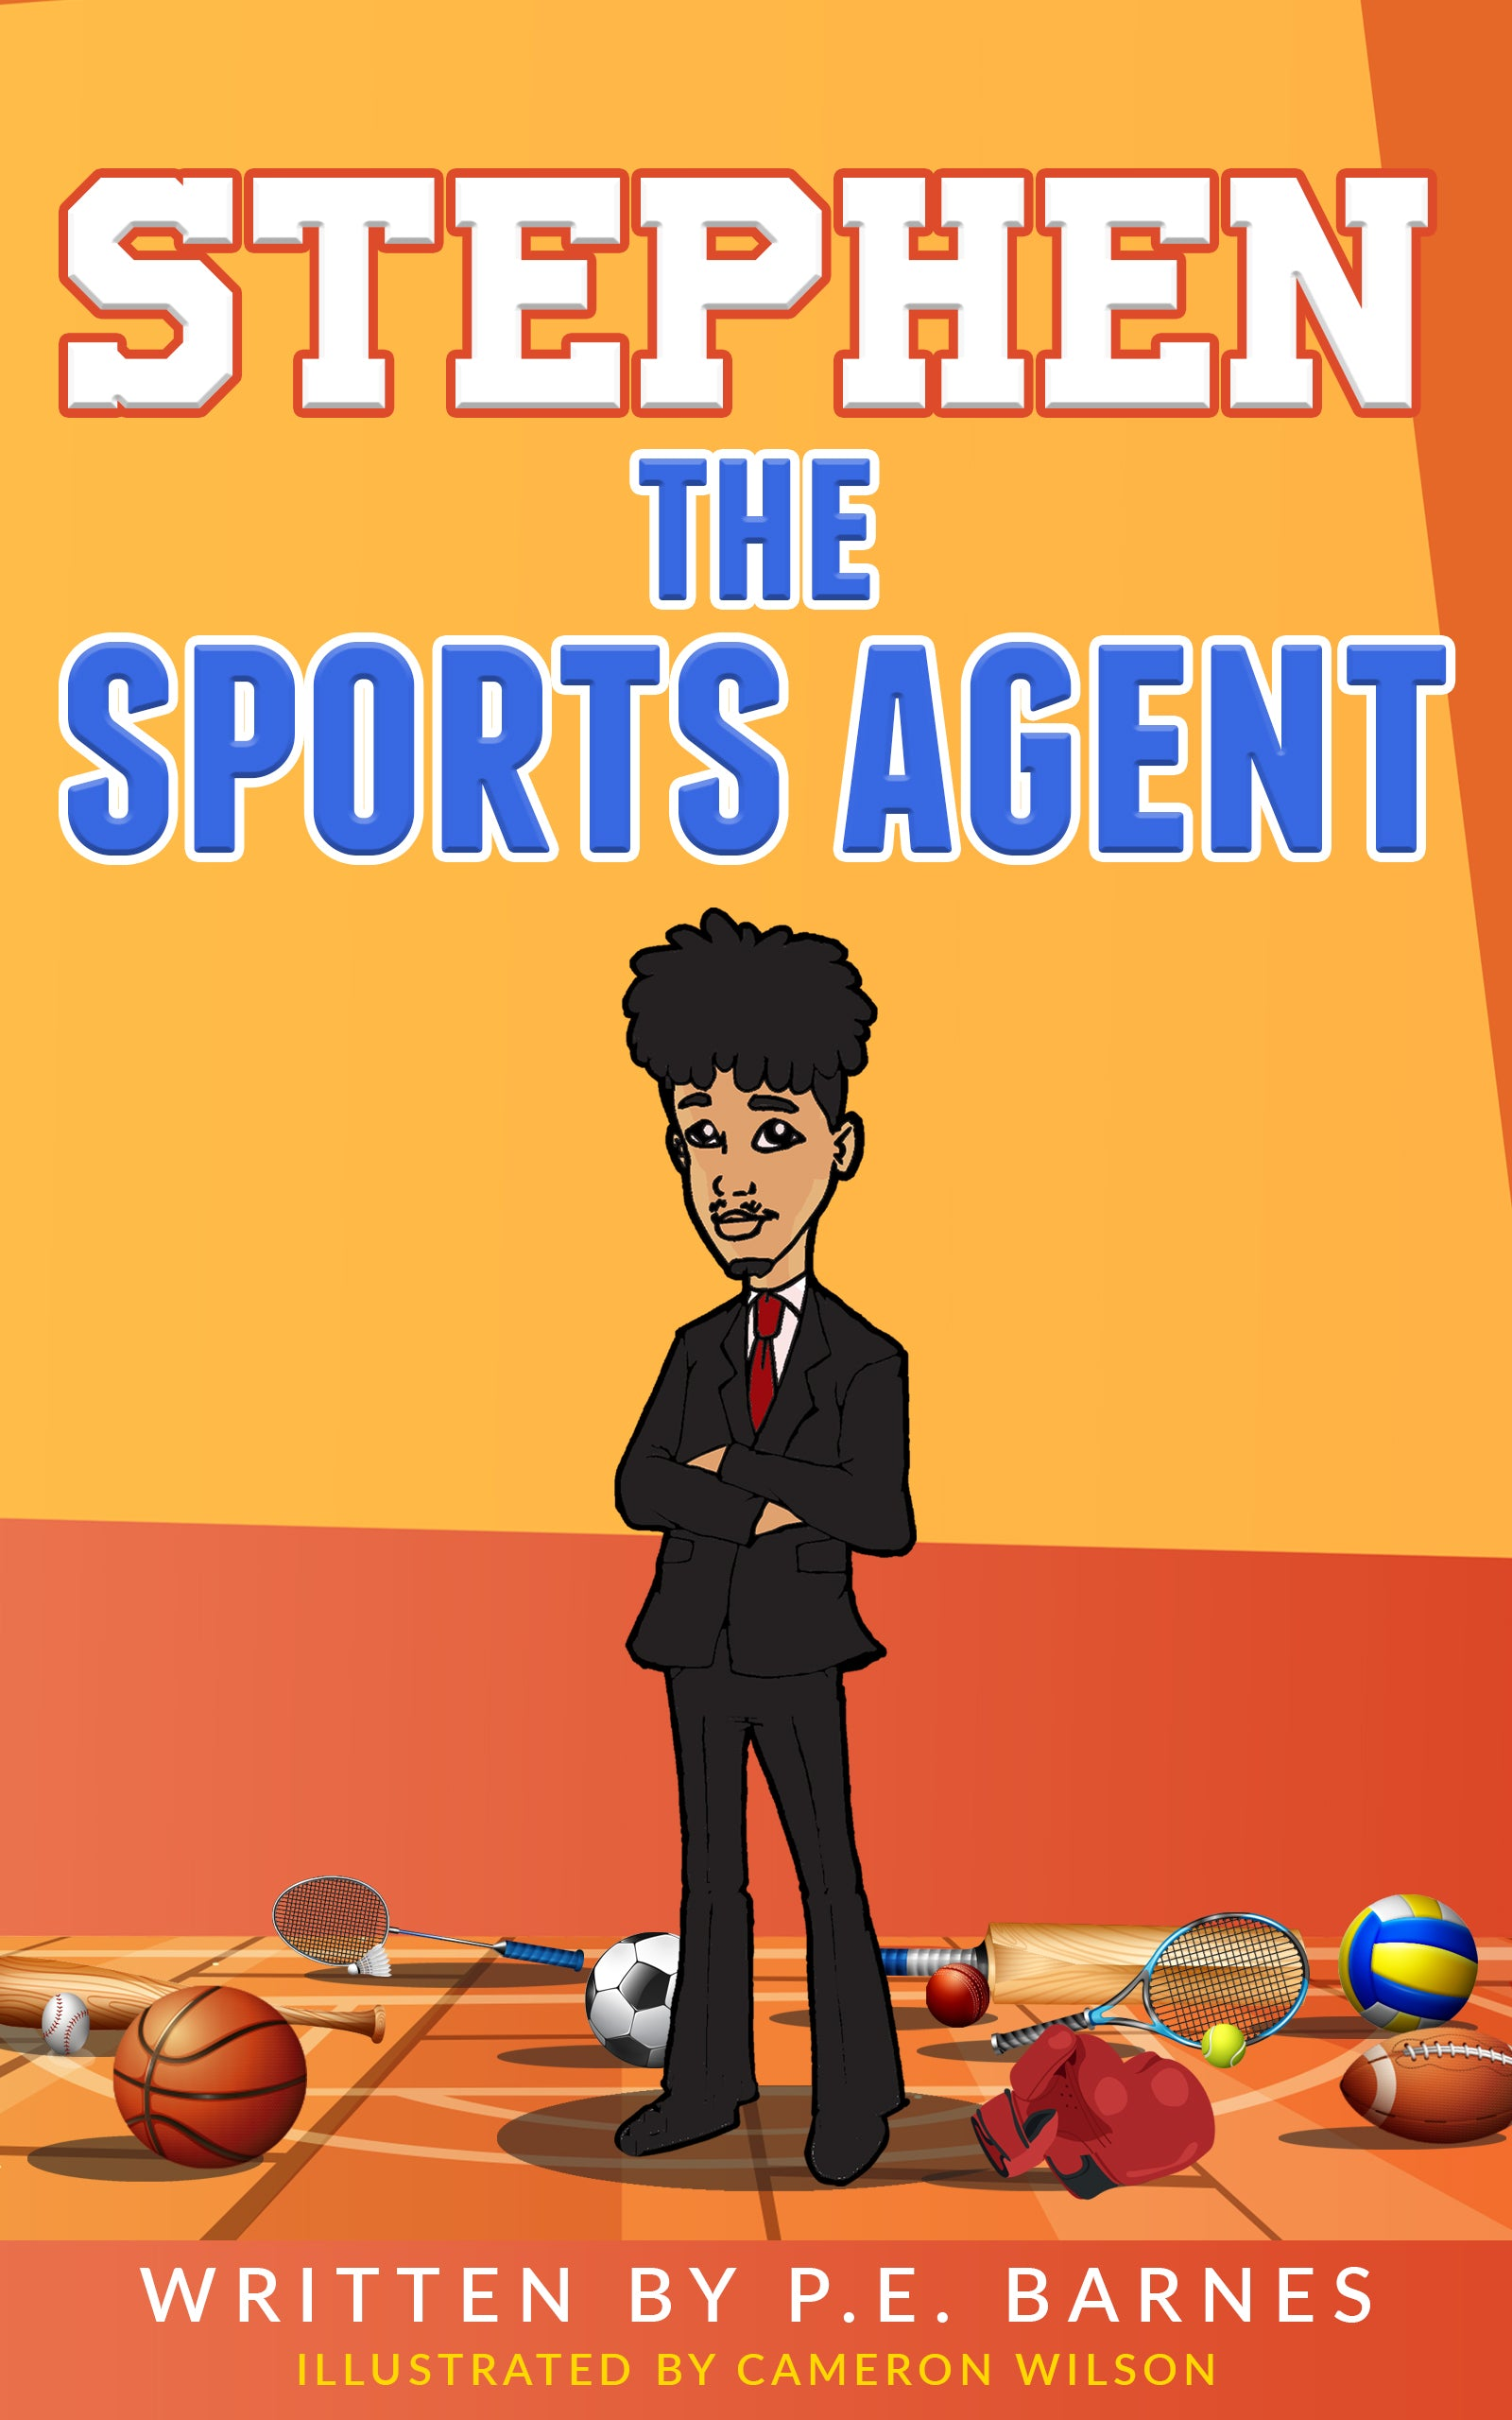 Stephen the Sports Agent (Ages 9-12) ⭐️⭐️⭐️⭐️⭐️